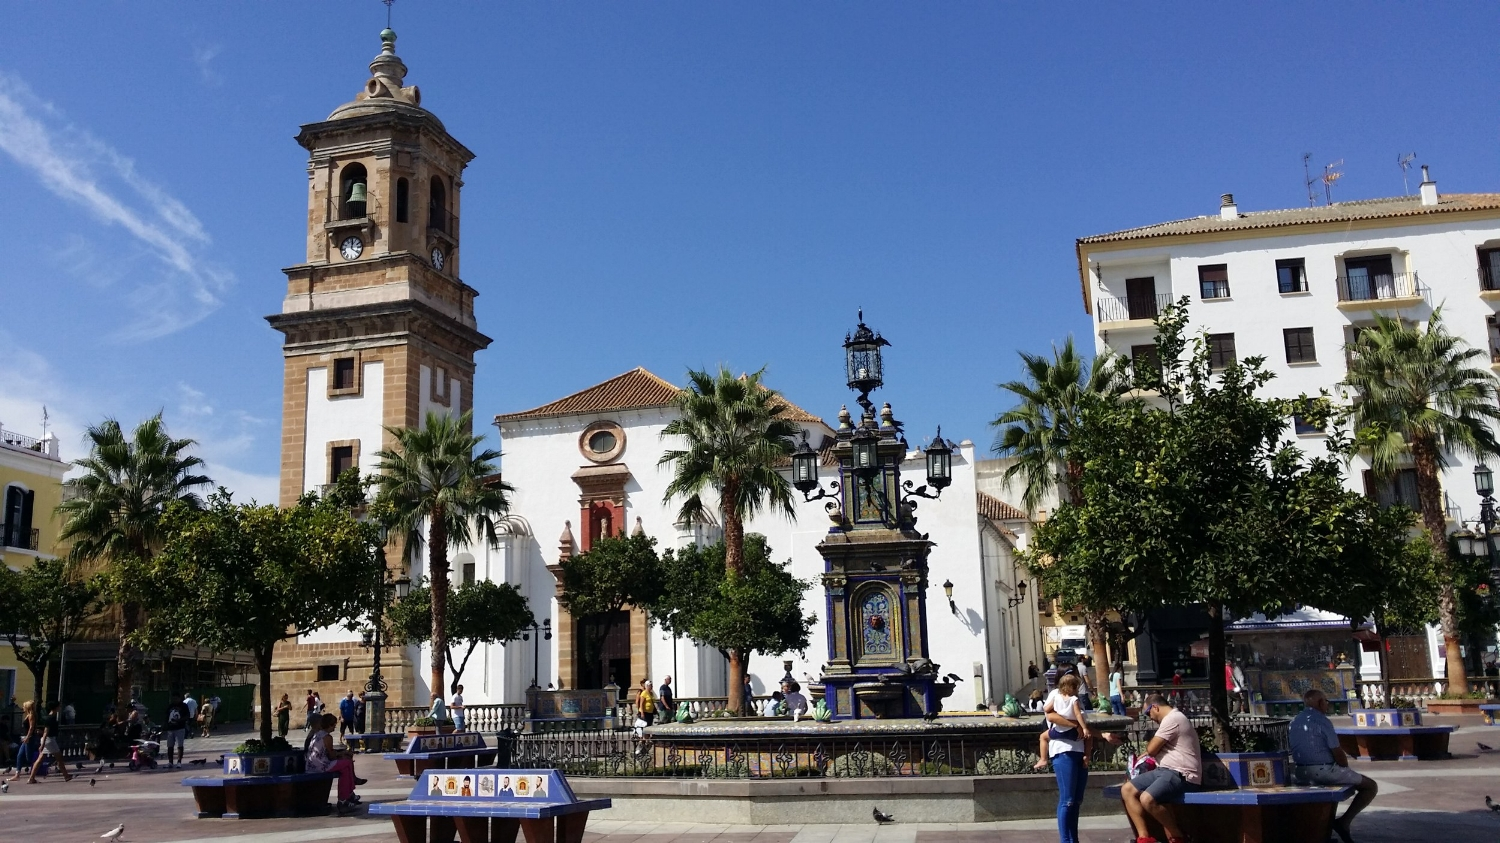 Pretty Plaza Alta is a hub for shopping and dining